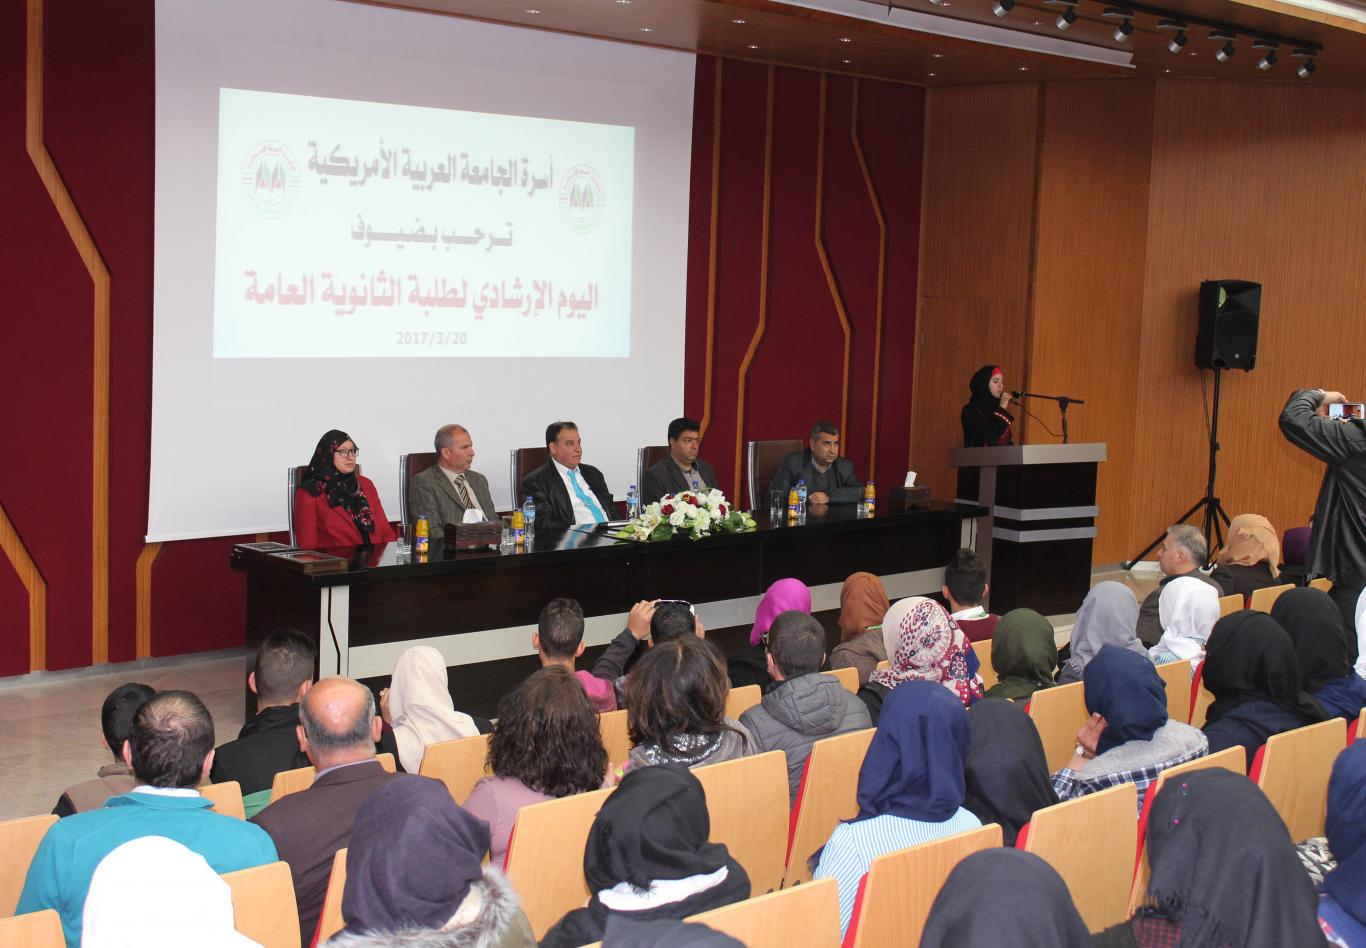 Arab American University Hosts the End of the Orientation